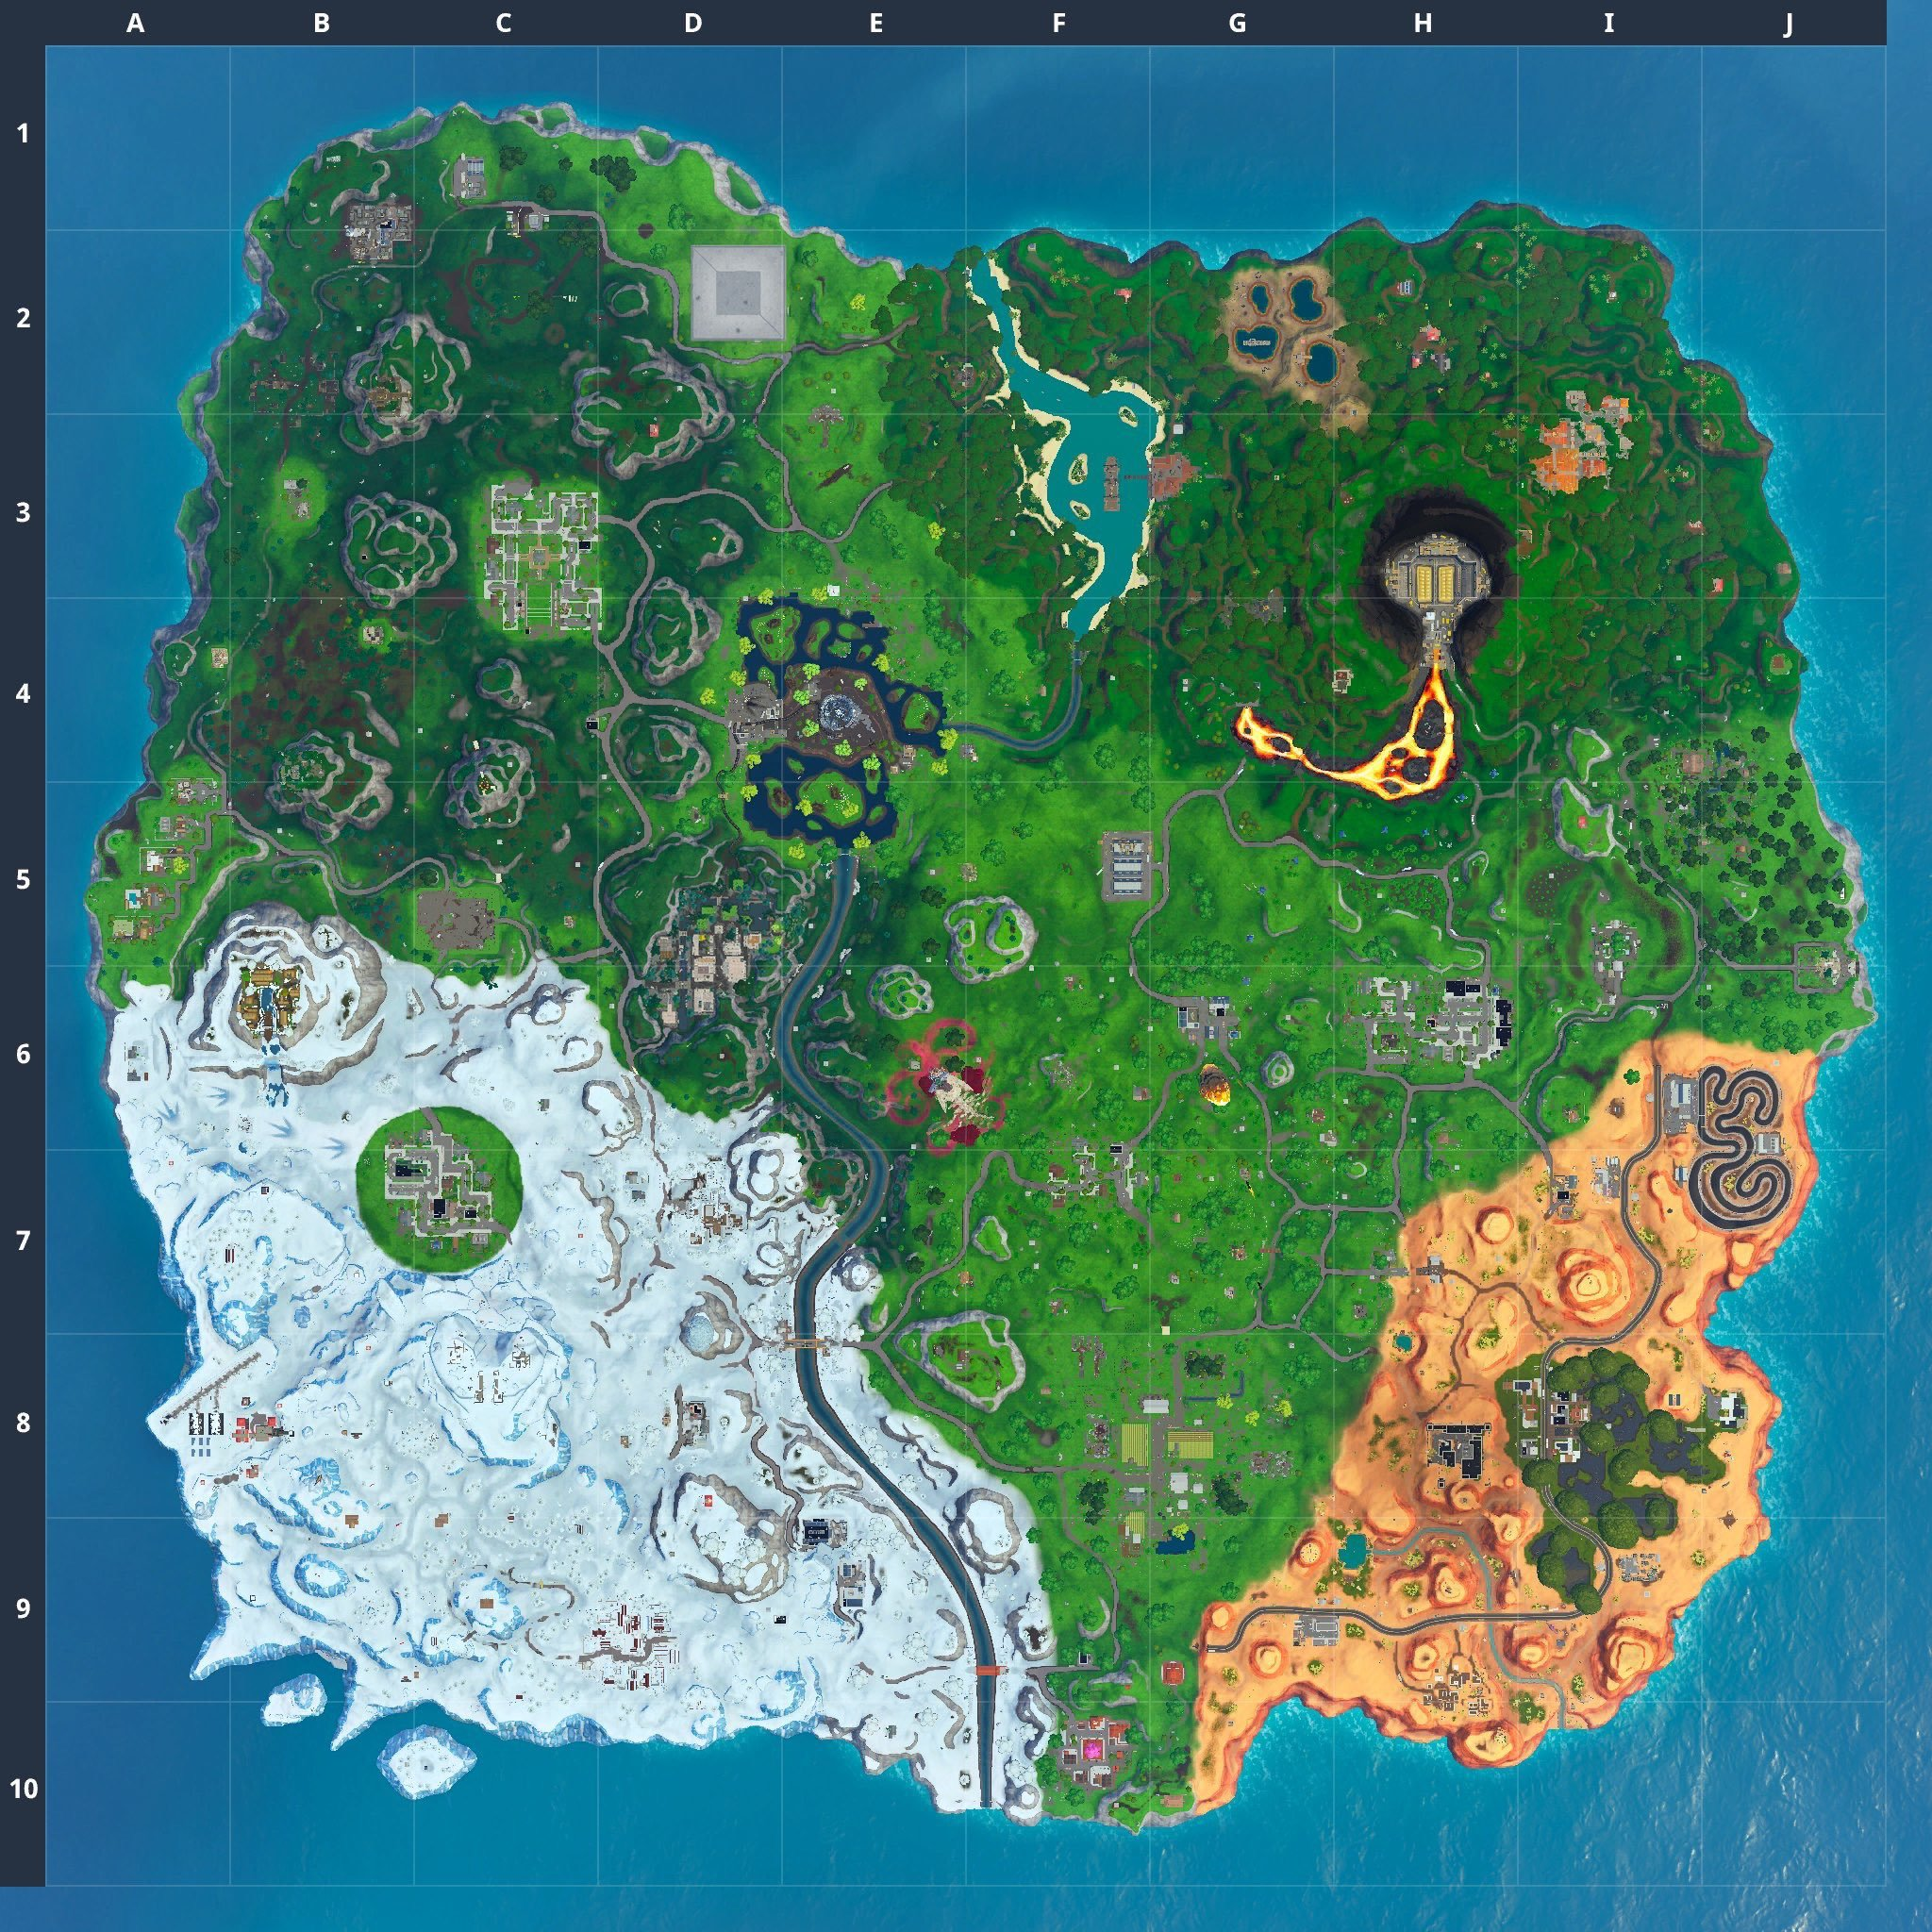 'Fortnite' Update 10.30 Adds Moisty Palms, Greasy Grove & Tactical SMG - Patch Notes